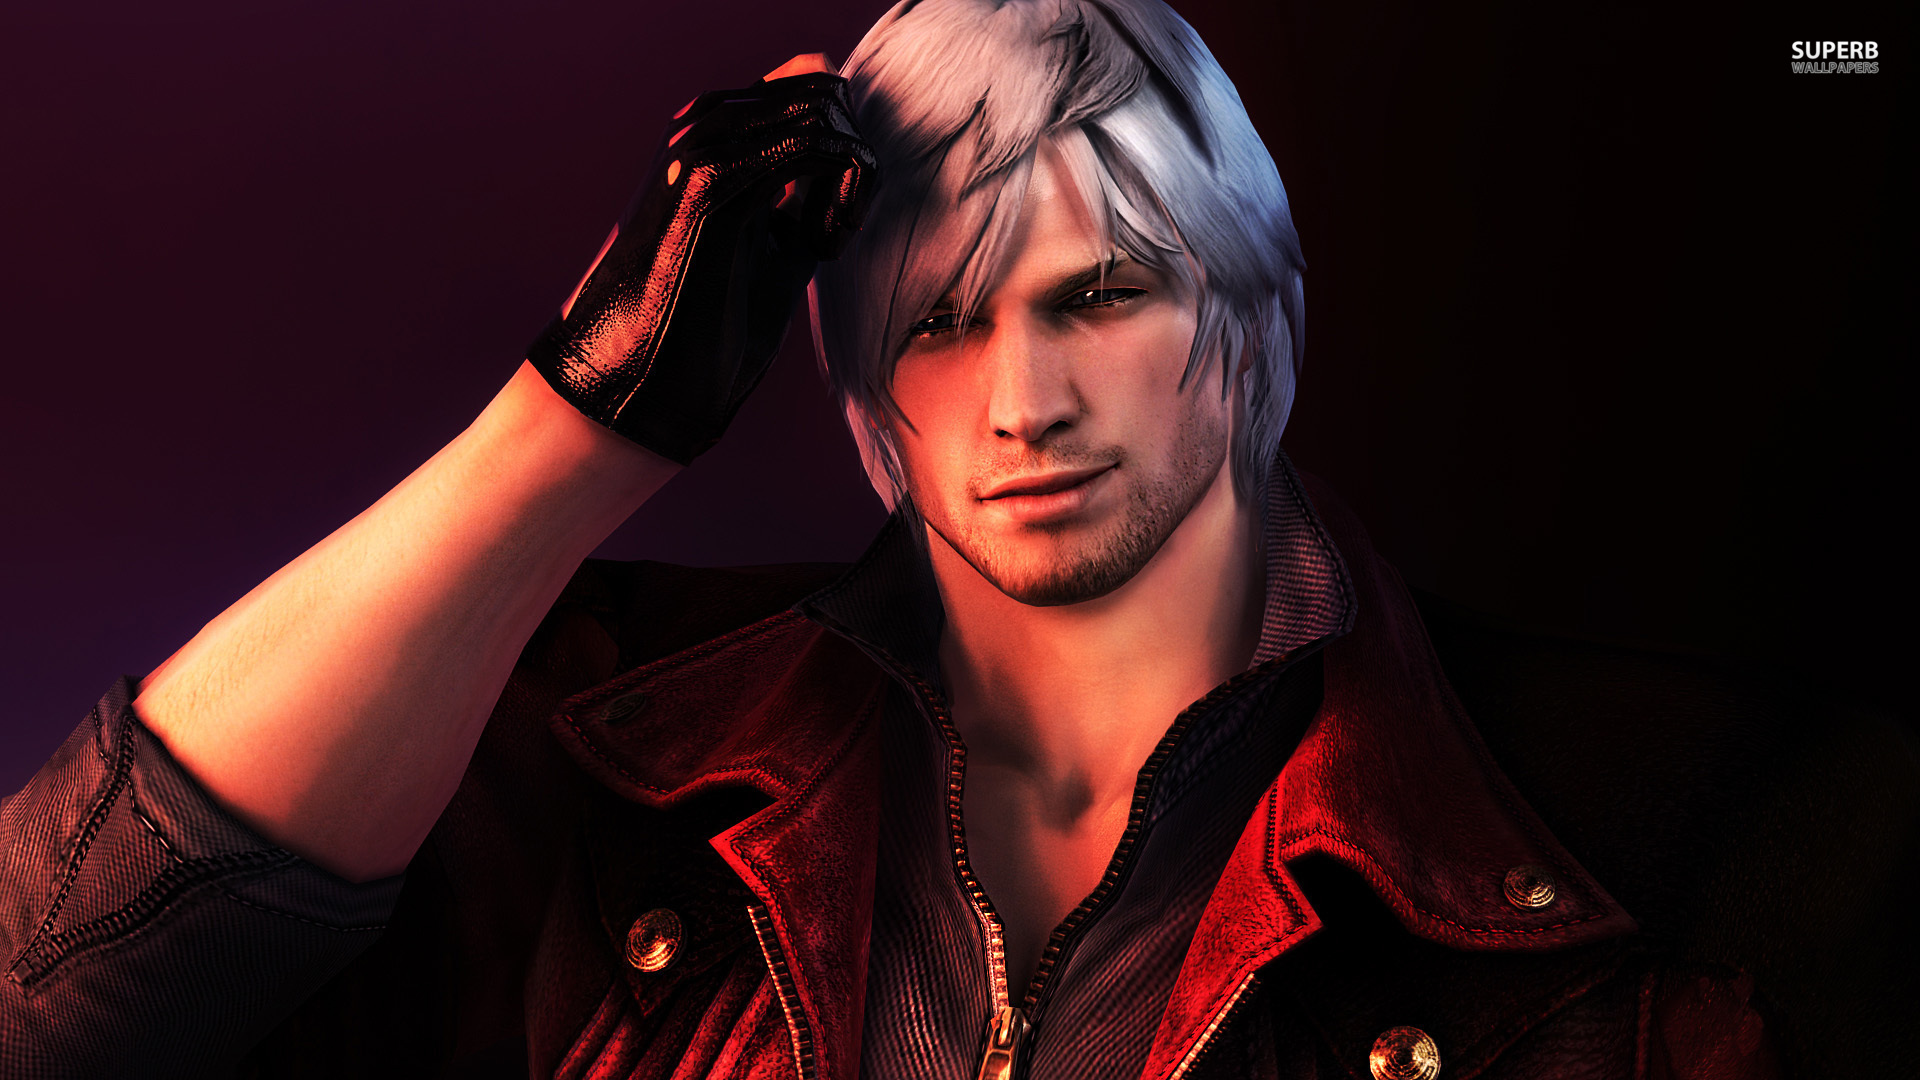 DmC Dante Haircut | Dante - Devil May Cry wallpaper 1920x1080